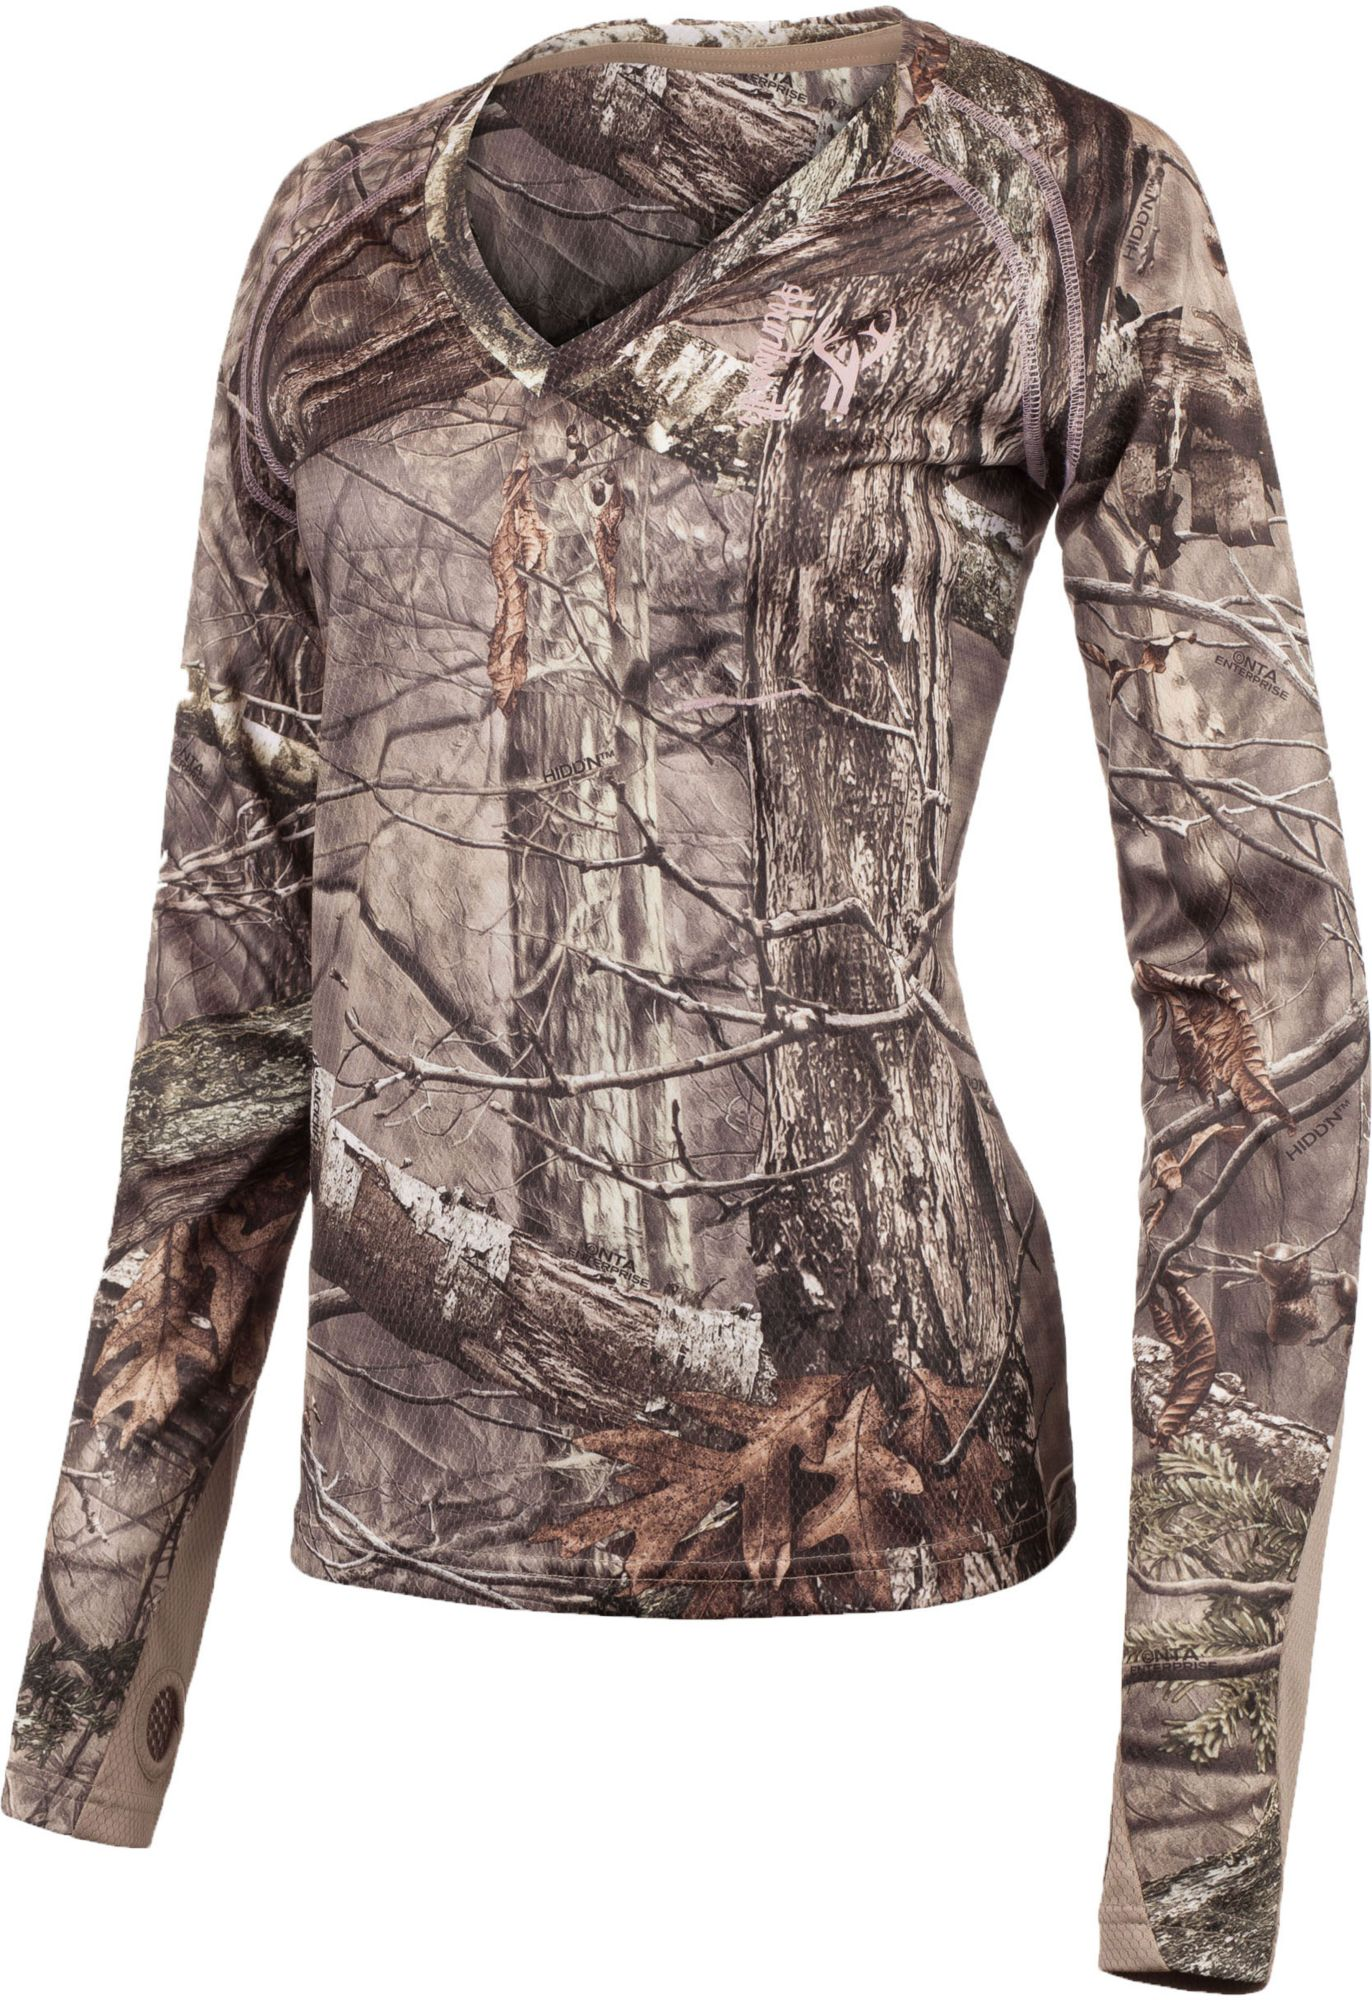 Huntworth Women's Terry Knit 1/4 Zip Long Sleeve Shirt, Size: Small, Hidd N Camo thumbnail